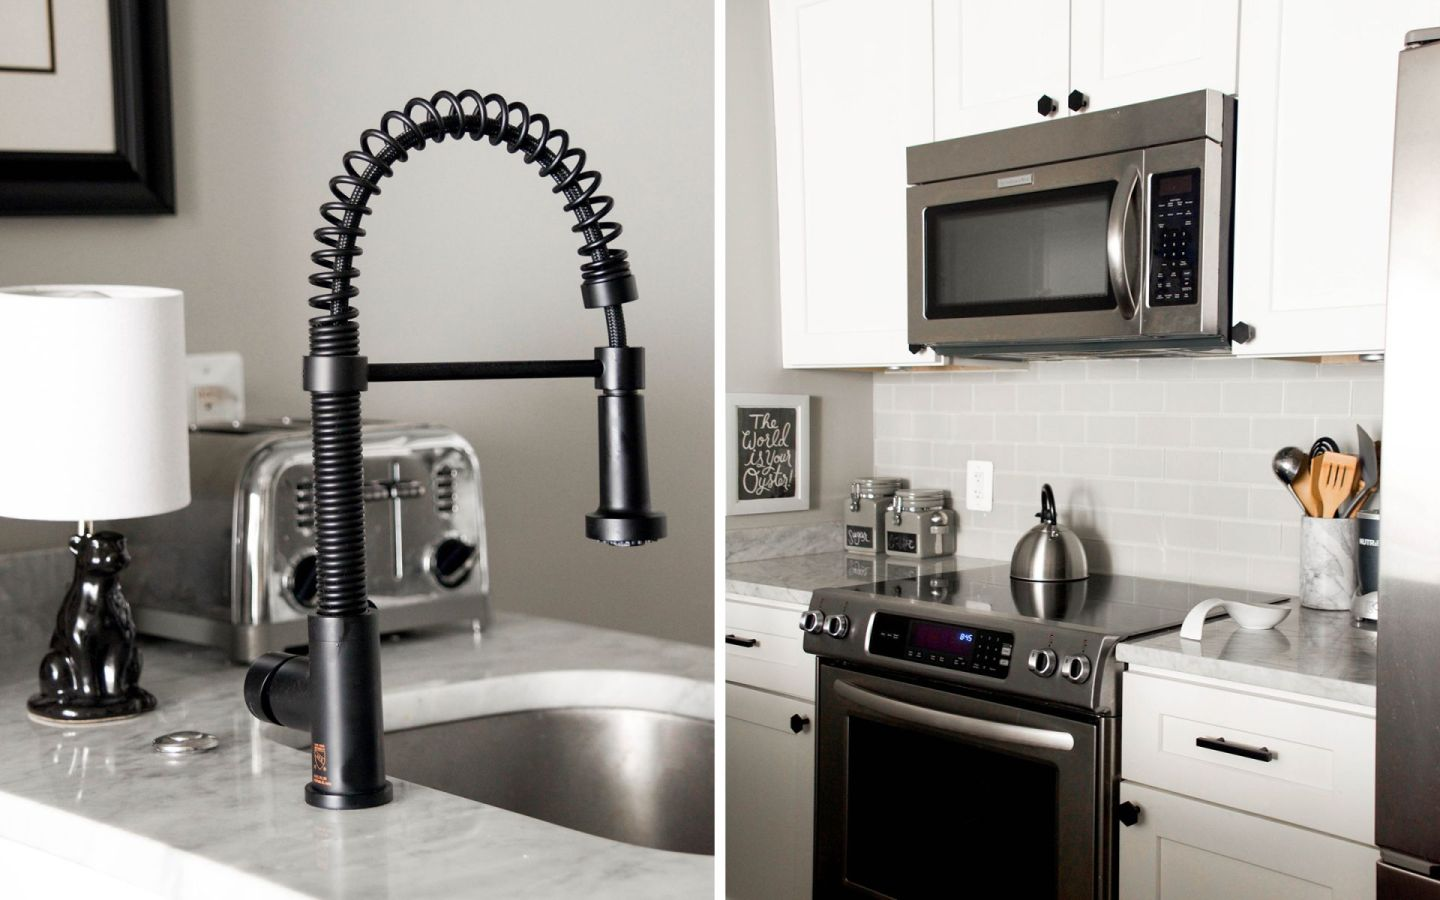 cb2 cabinet hardware - cb2 hex knob - update kitchen hardware - black vigo edison kitchen faucet